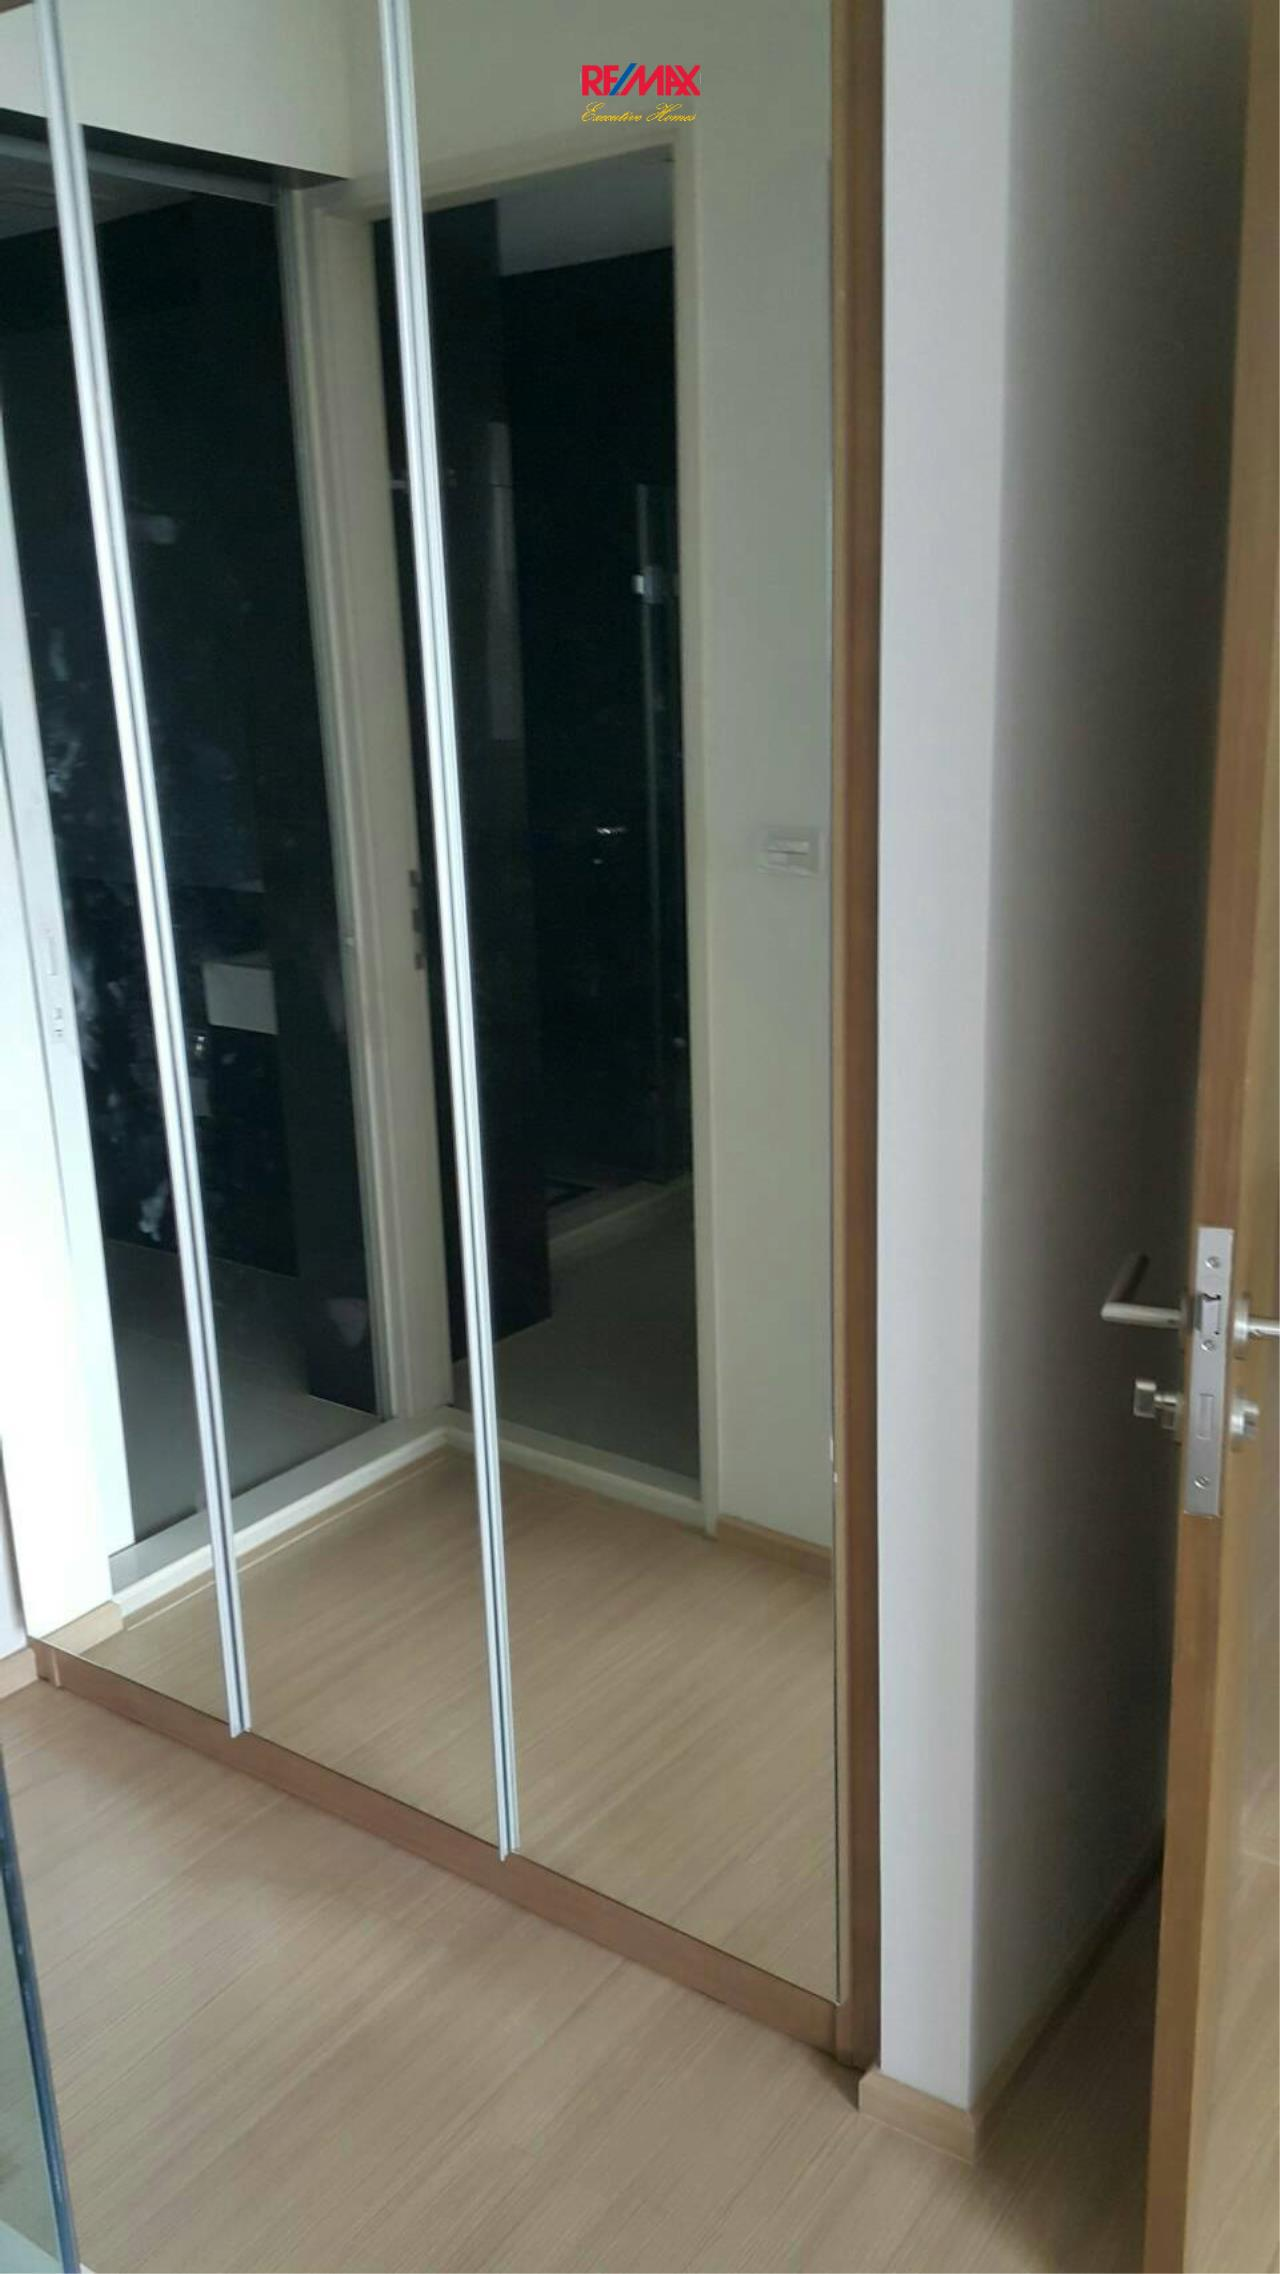 RE/MAX Executive Homes Agency's Nice 1 Bedroom for Rent Rhythm 50 6